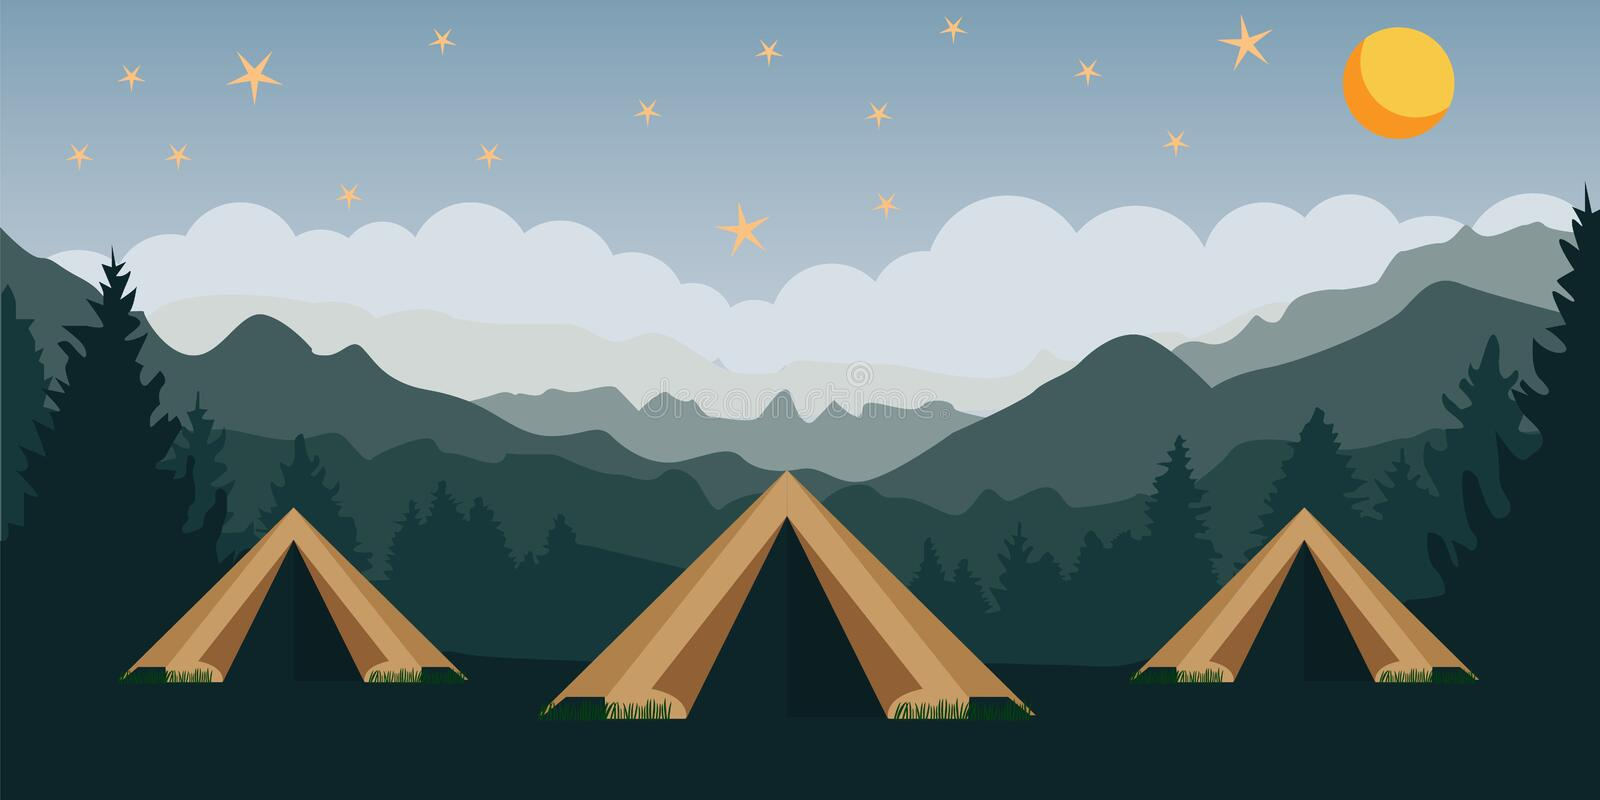 Summer camping high in the mountains vector illustration